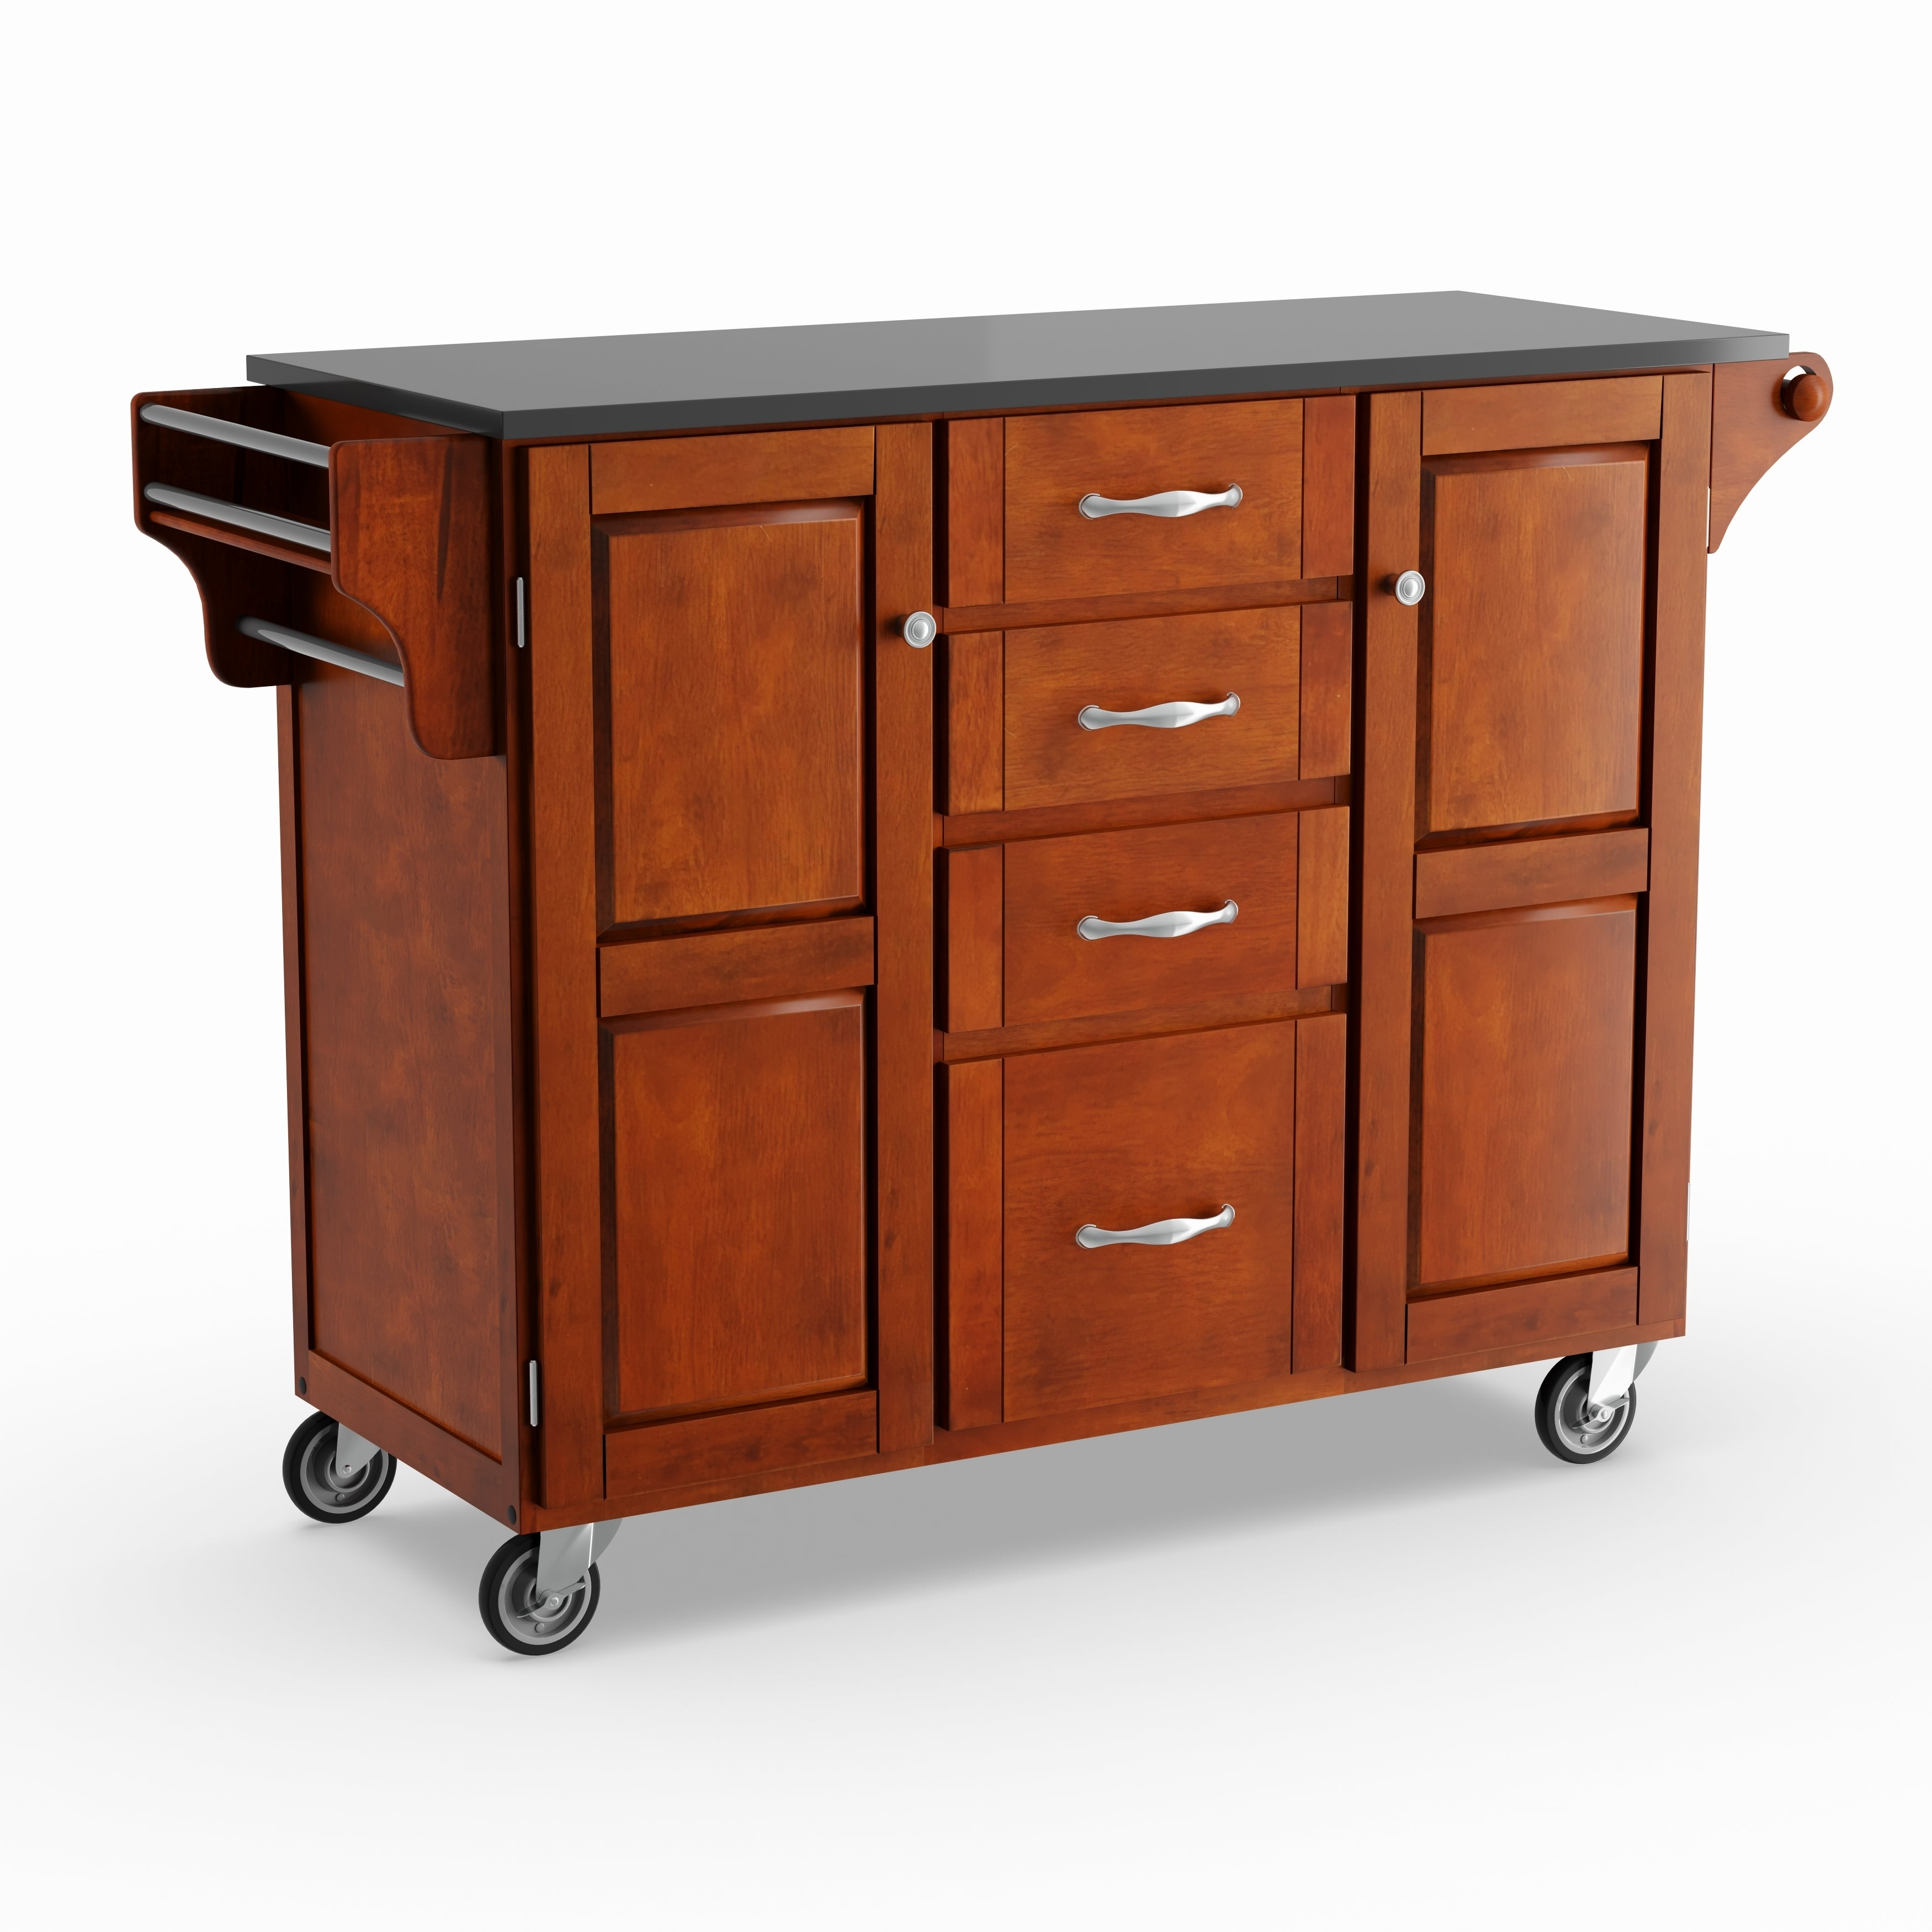 Beau Shop Gracewood Hollow Defoe Cherry Finish Black Granite Top Kitchen Cart    On Sale   Free Shipping Today   Overstock.com   20000637